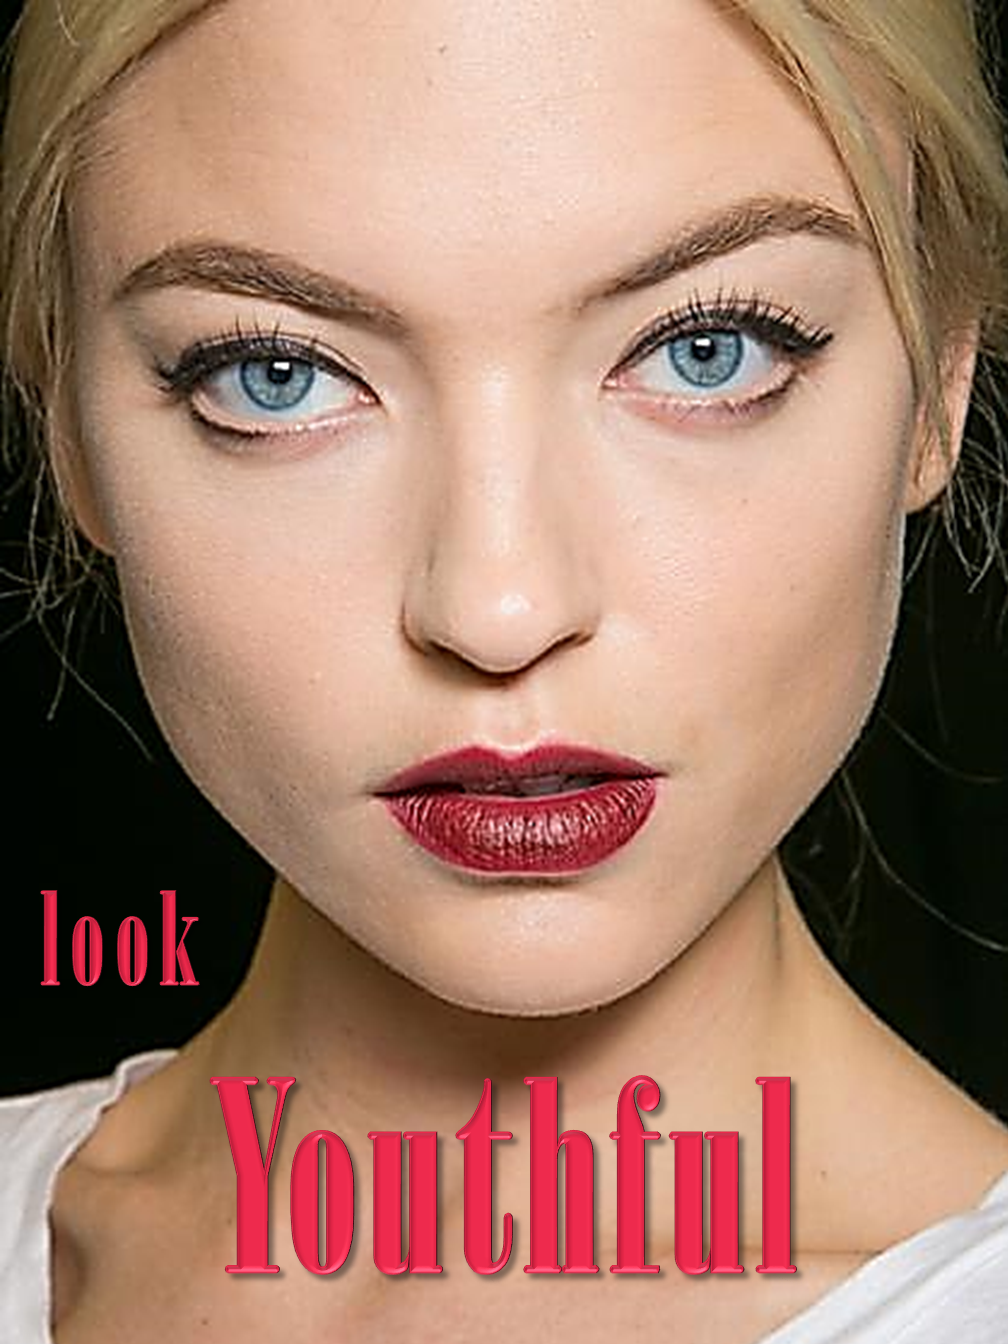 Look Youthful